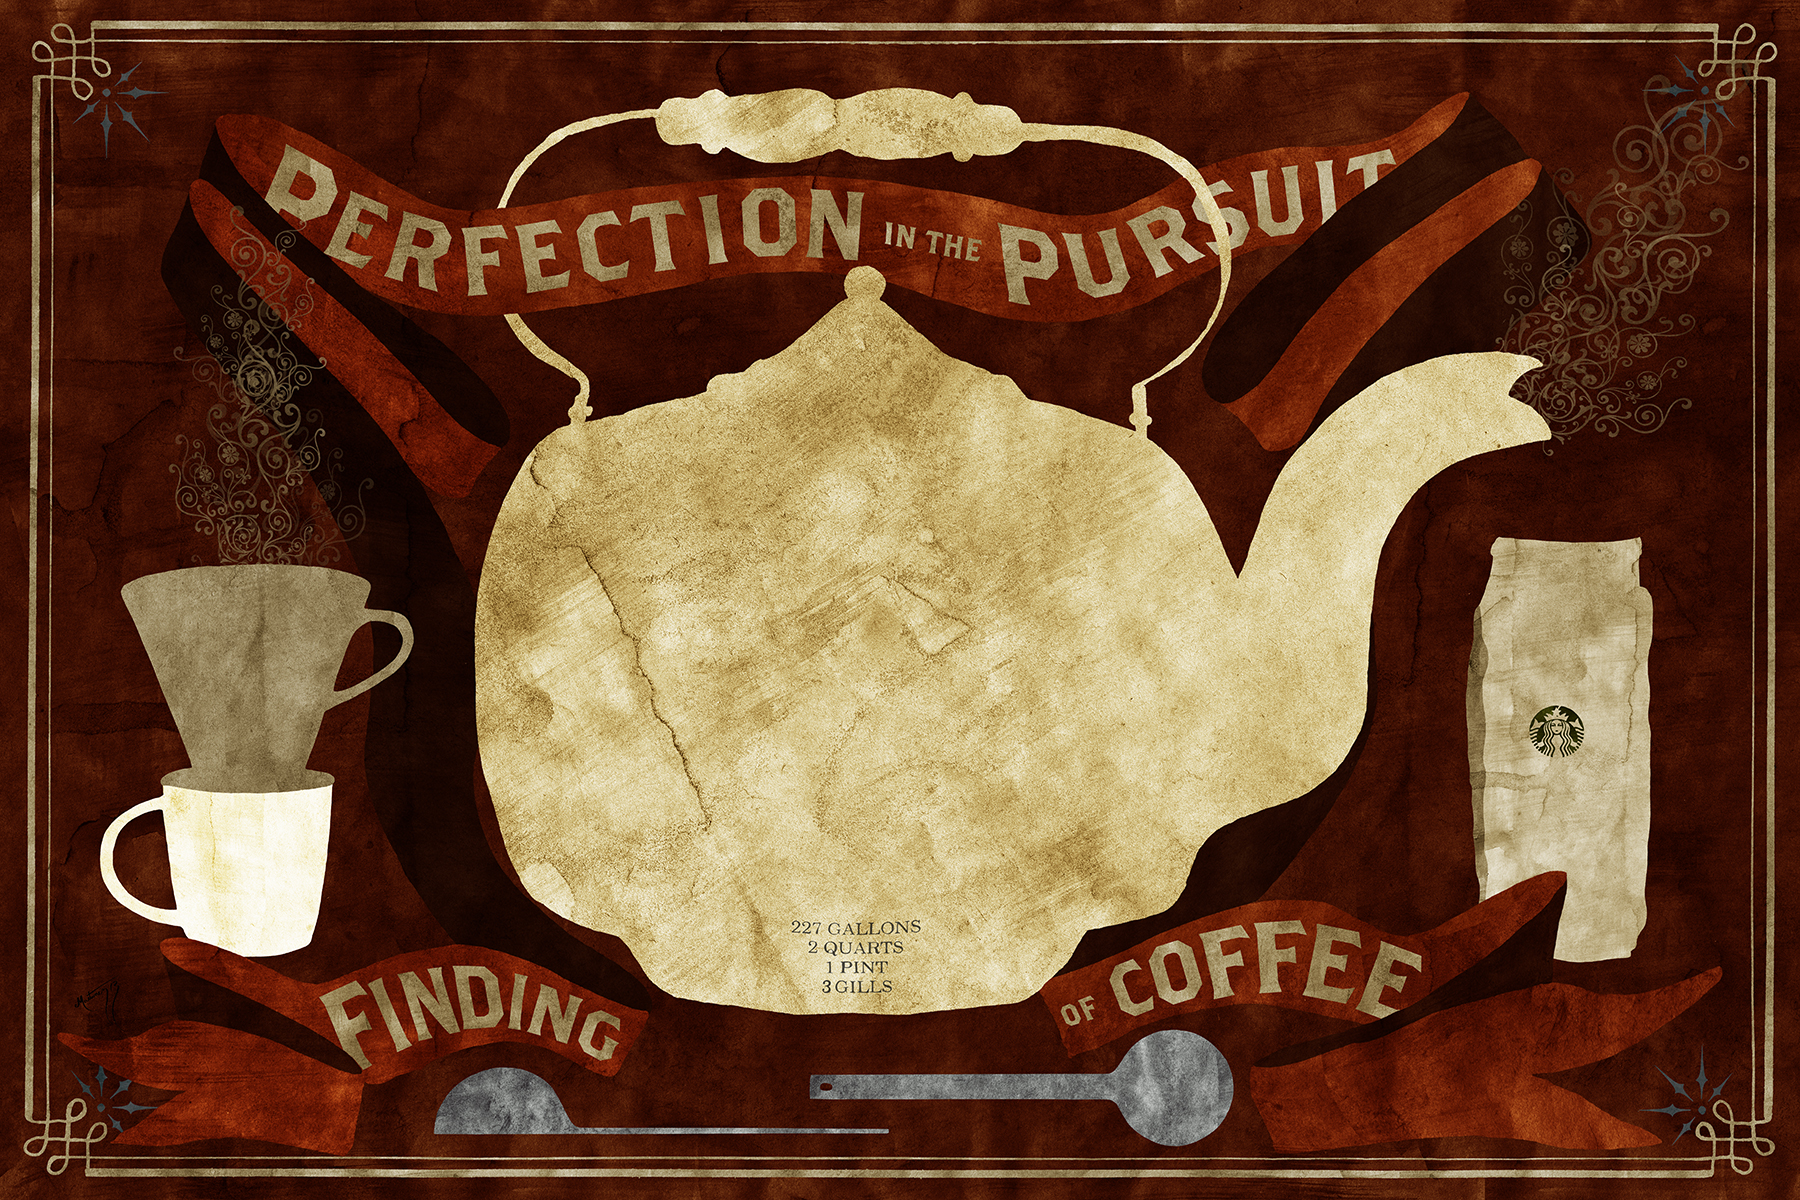 Finding Perfection in the Pursuit of Coffee